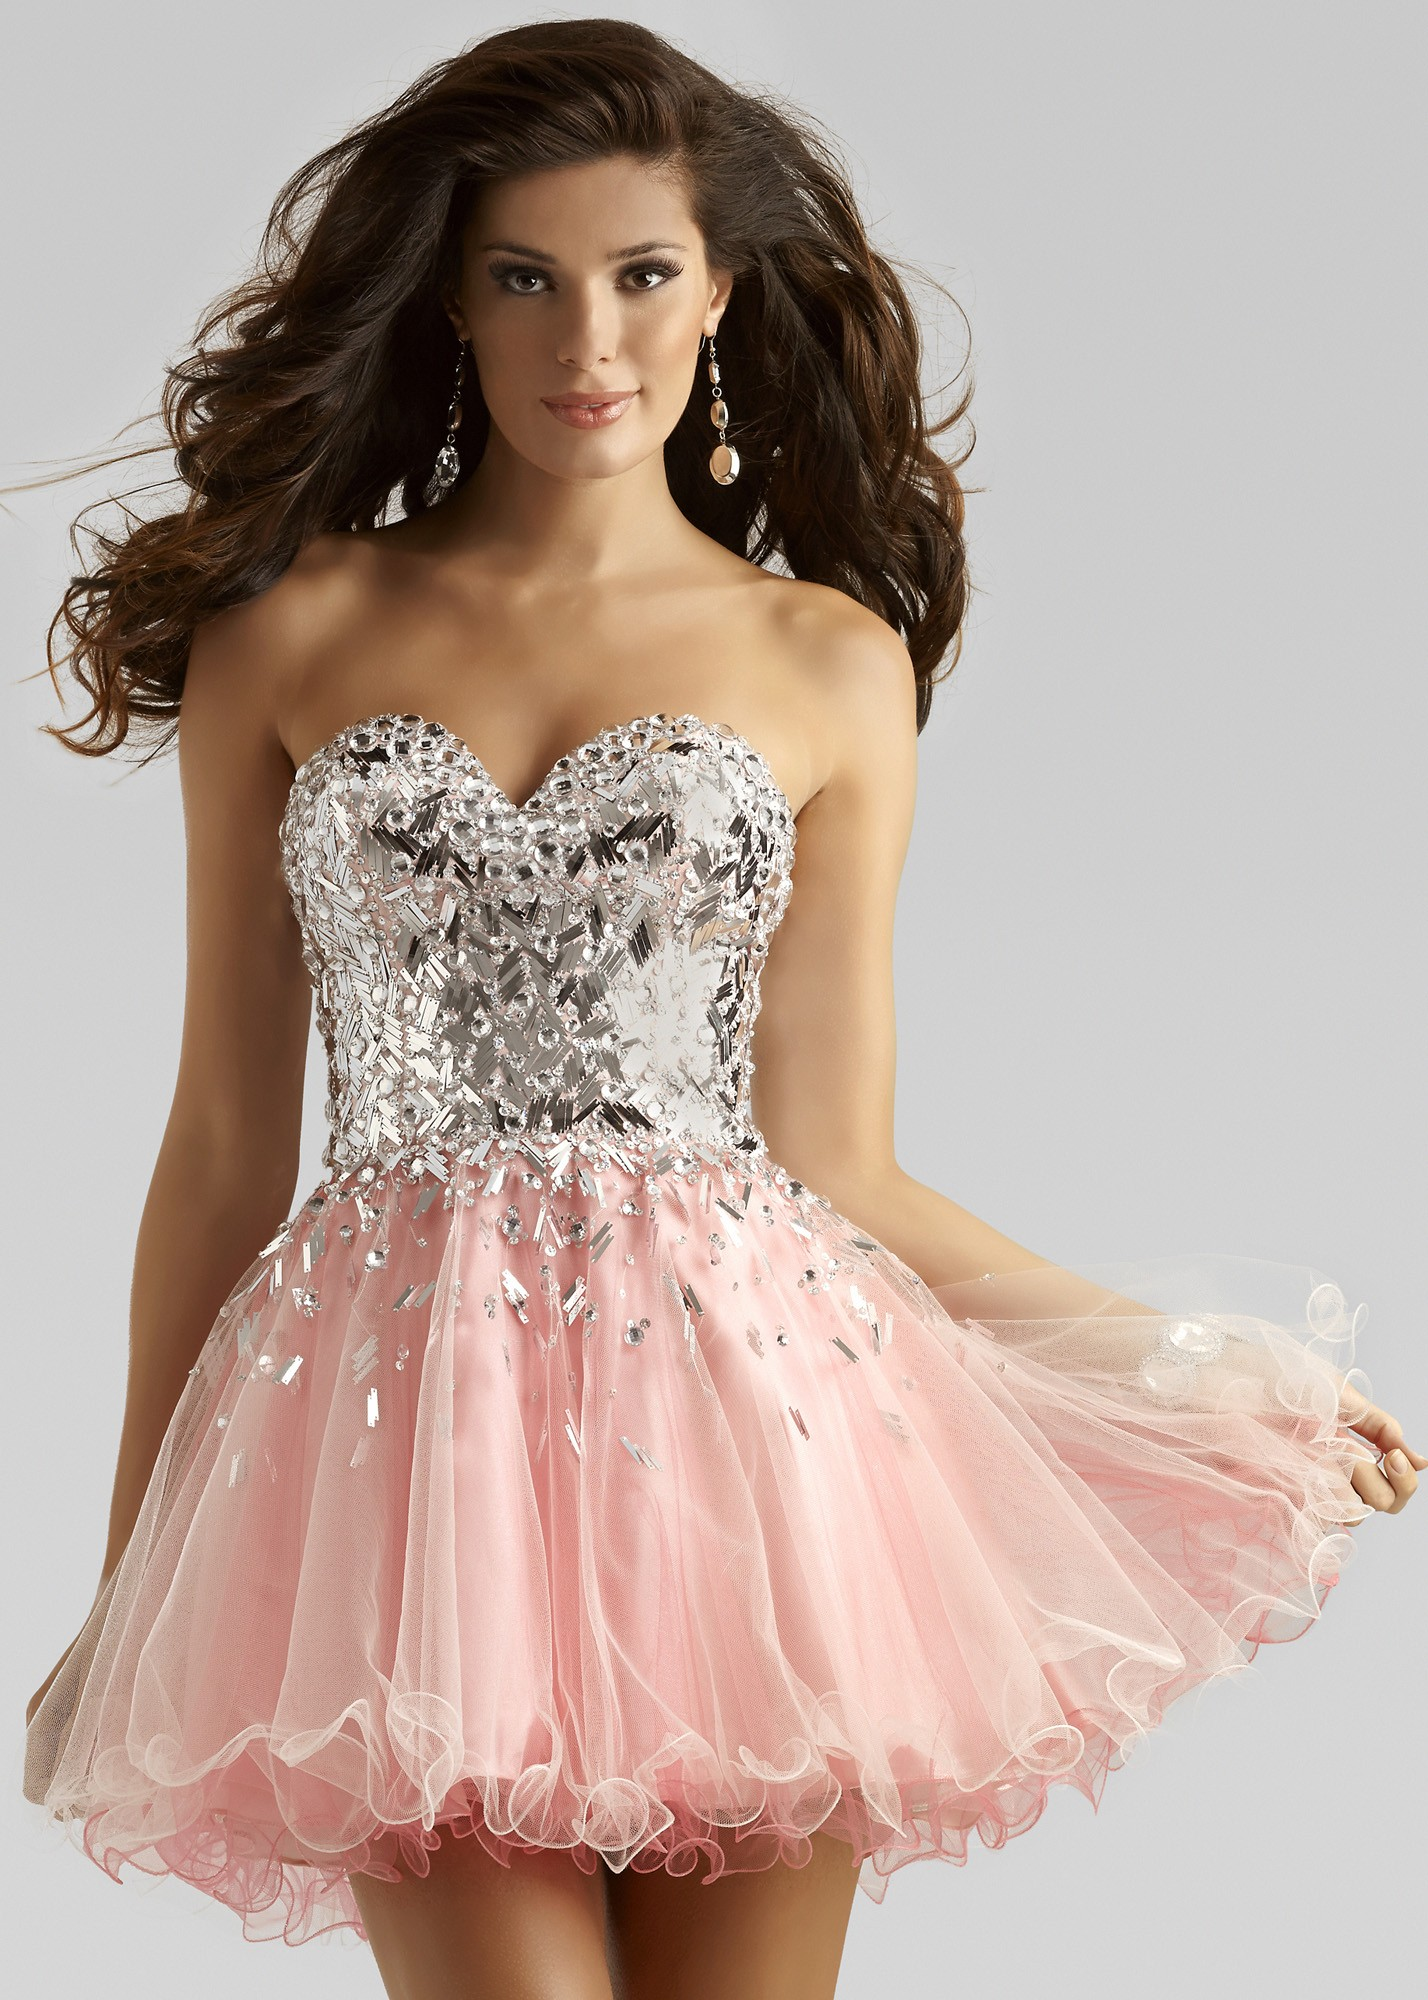 Clarisse 2391 - Strapless Beaded Short Prom Dress - RissyRoos.com ...